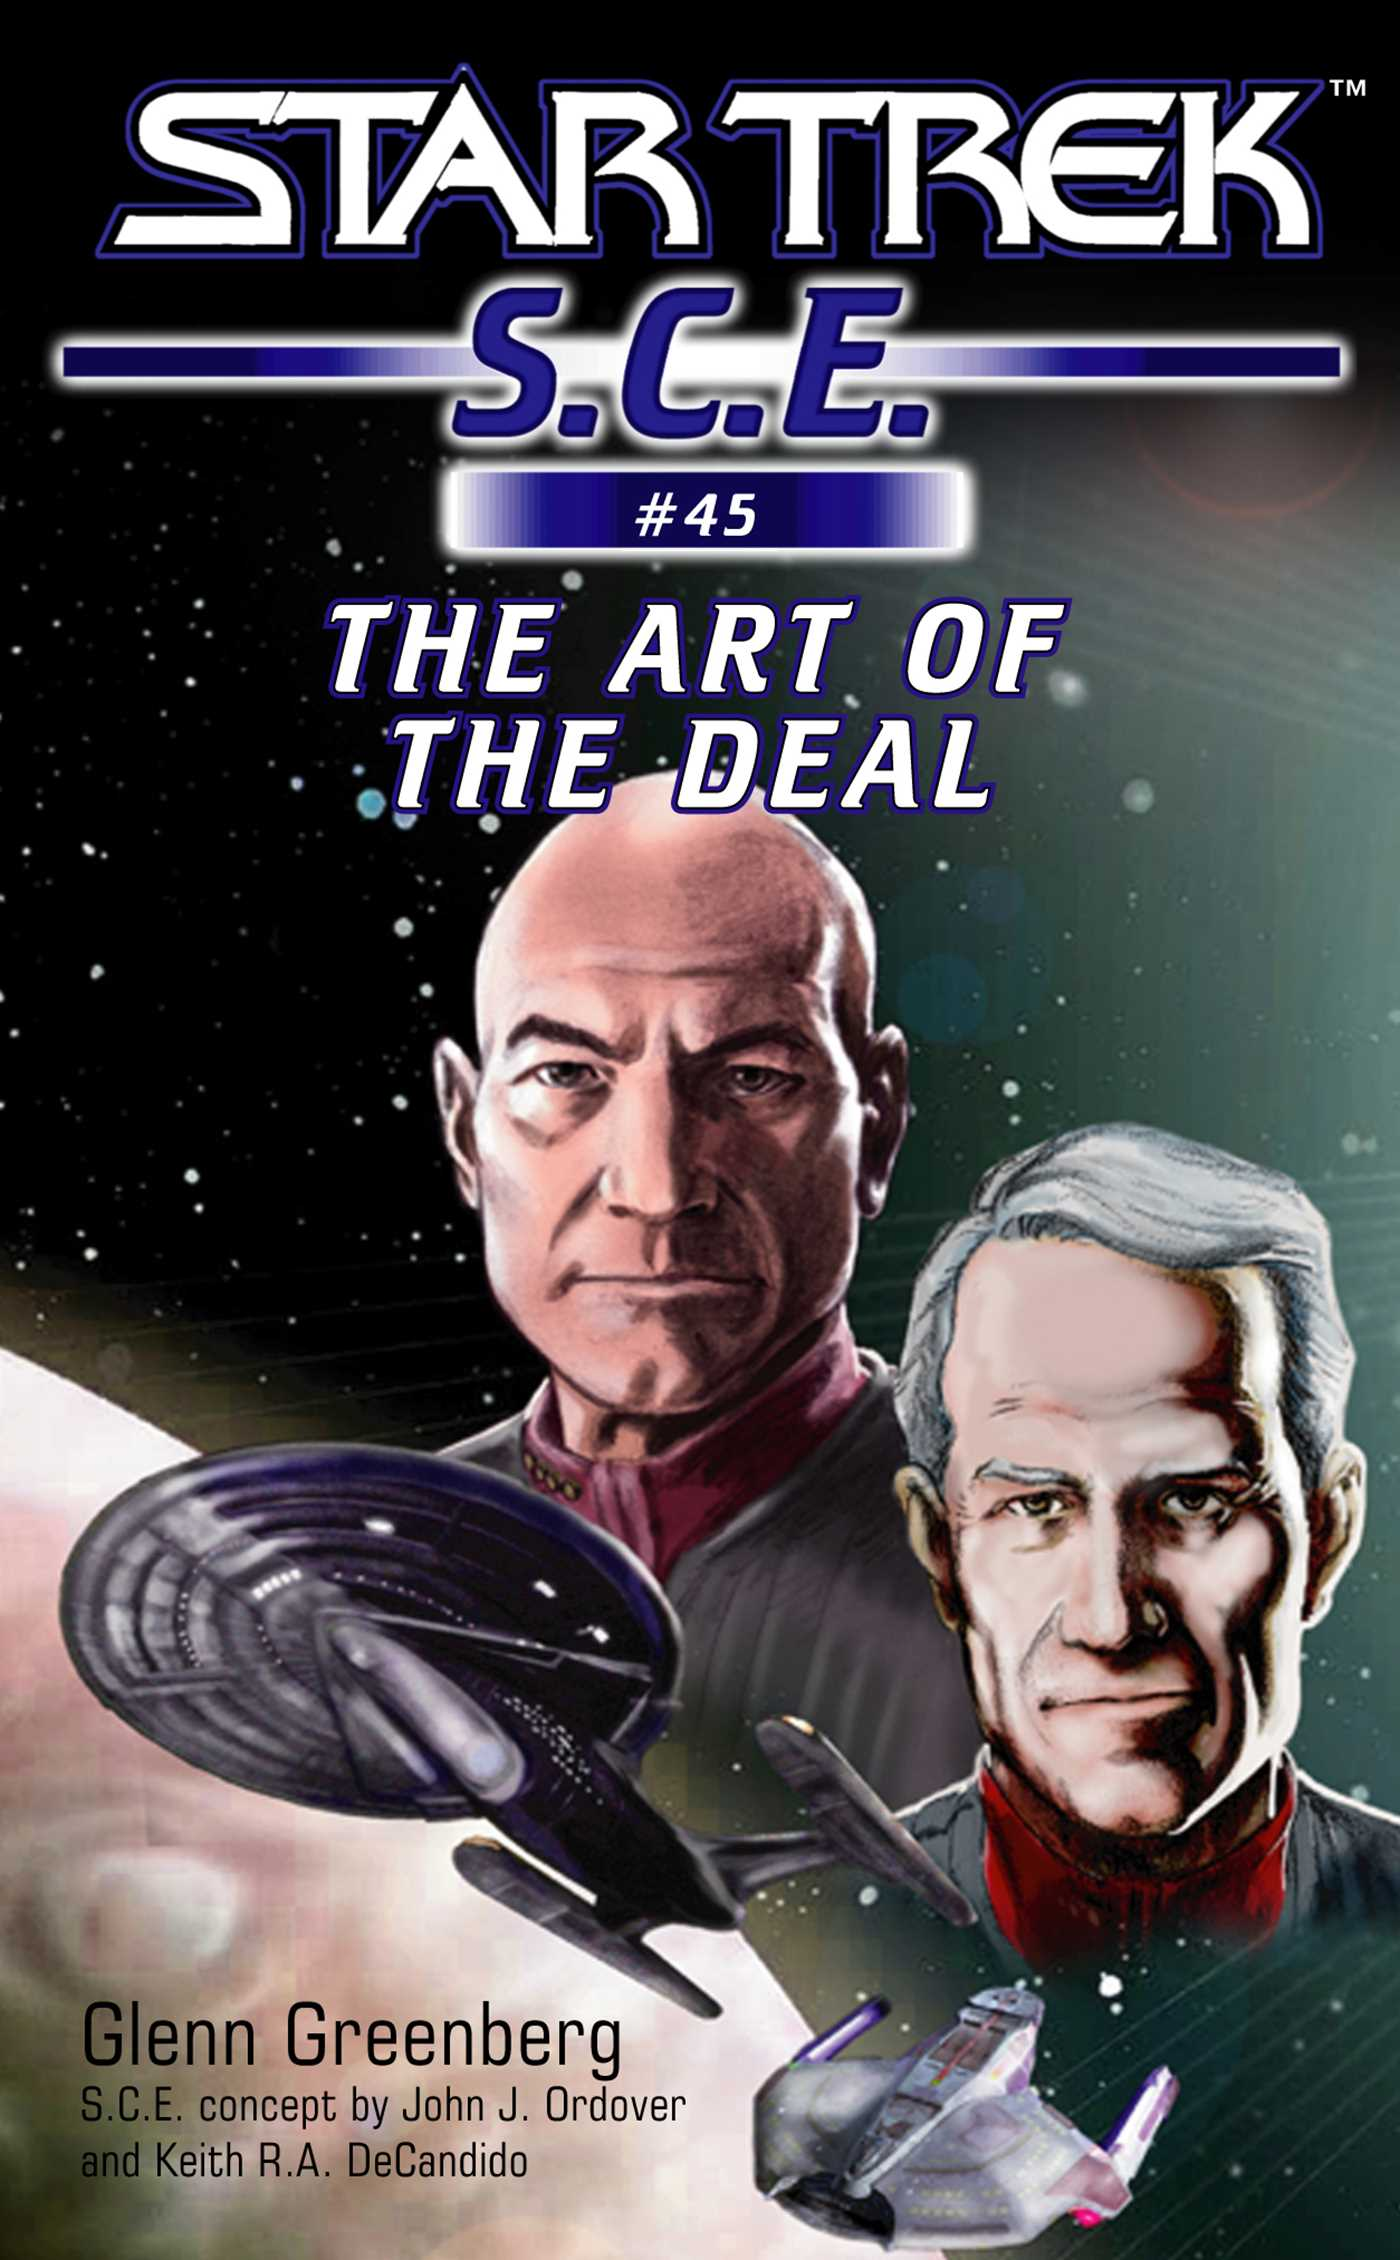 Star trek the art of the deal 9780743496865 hr